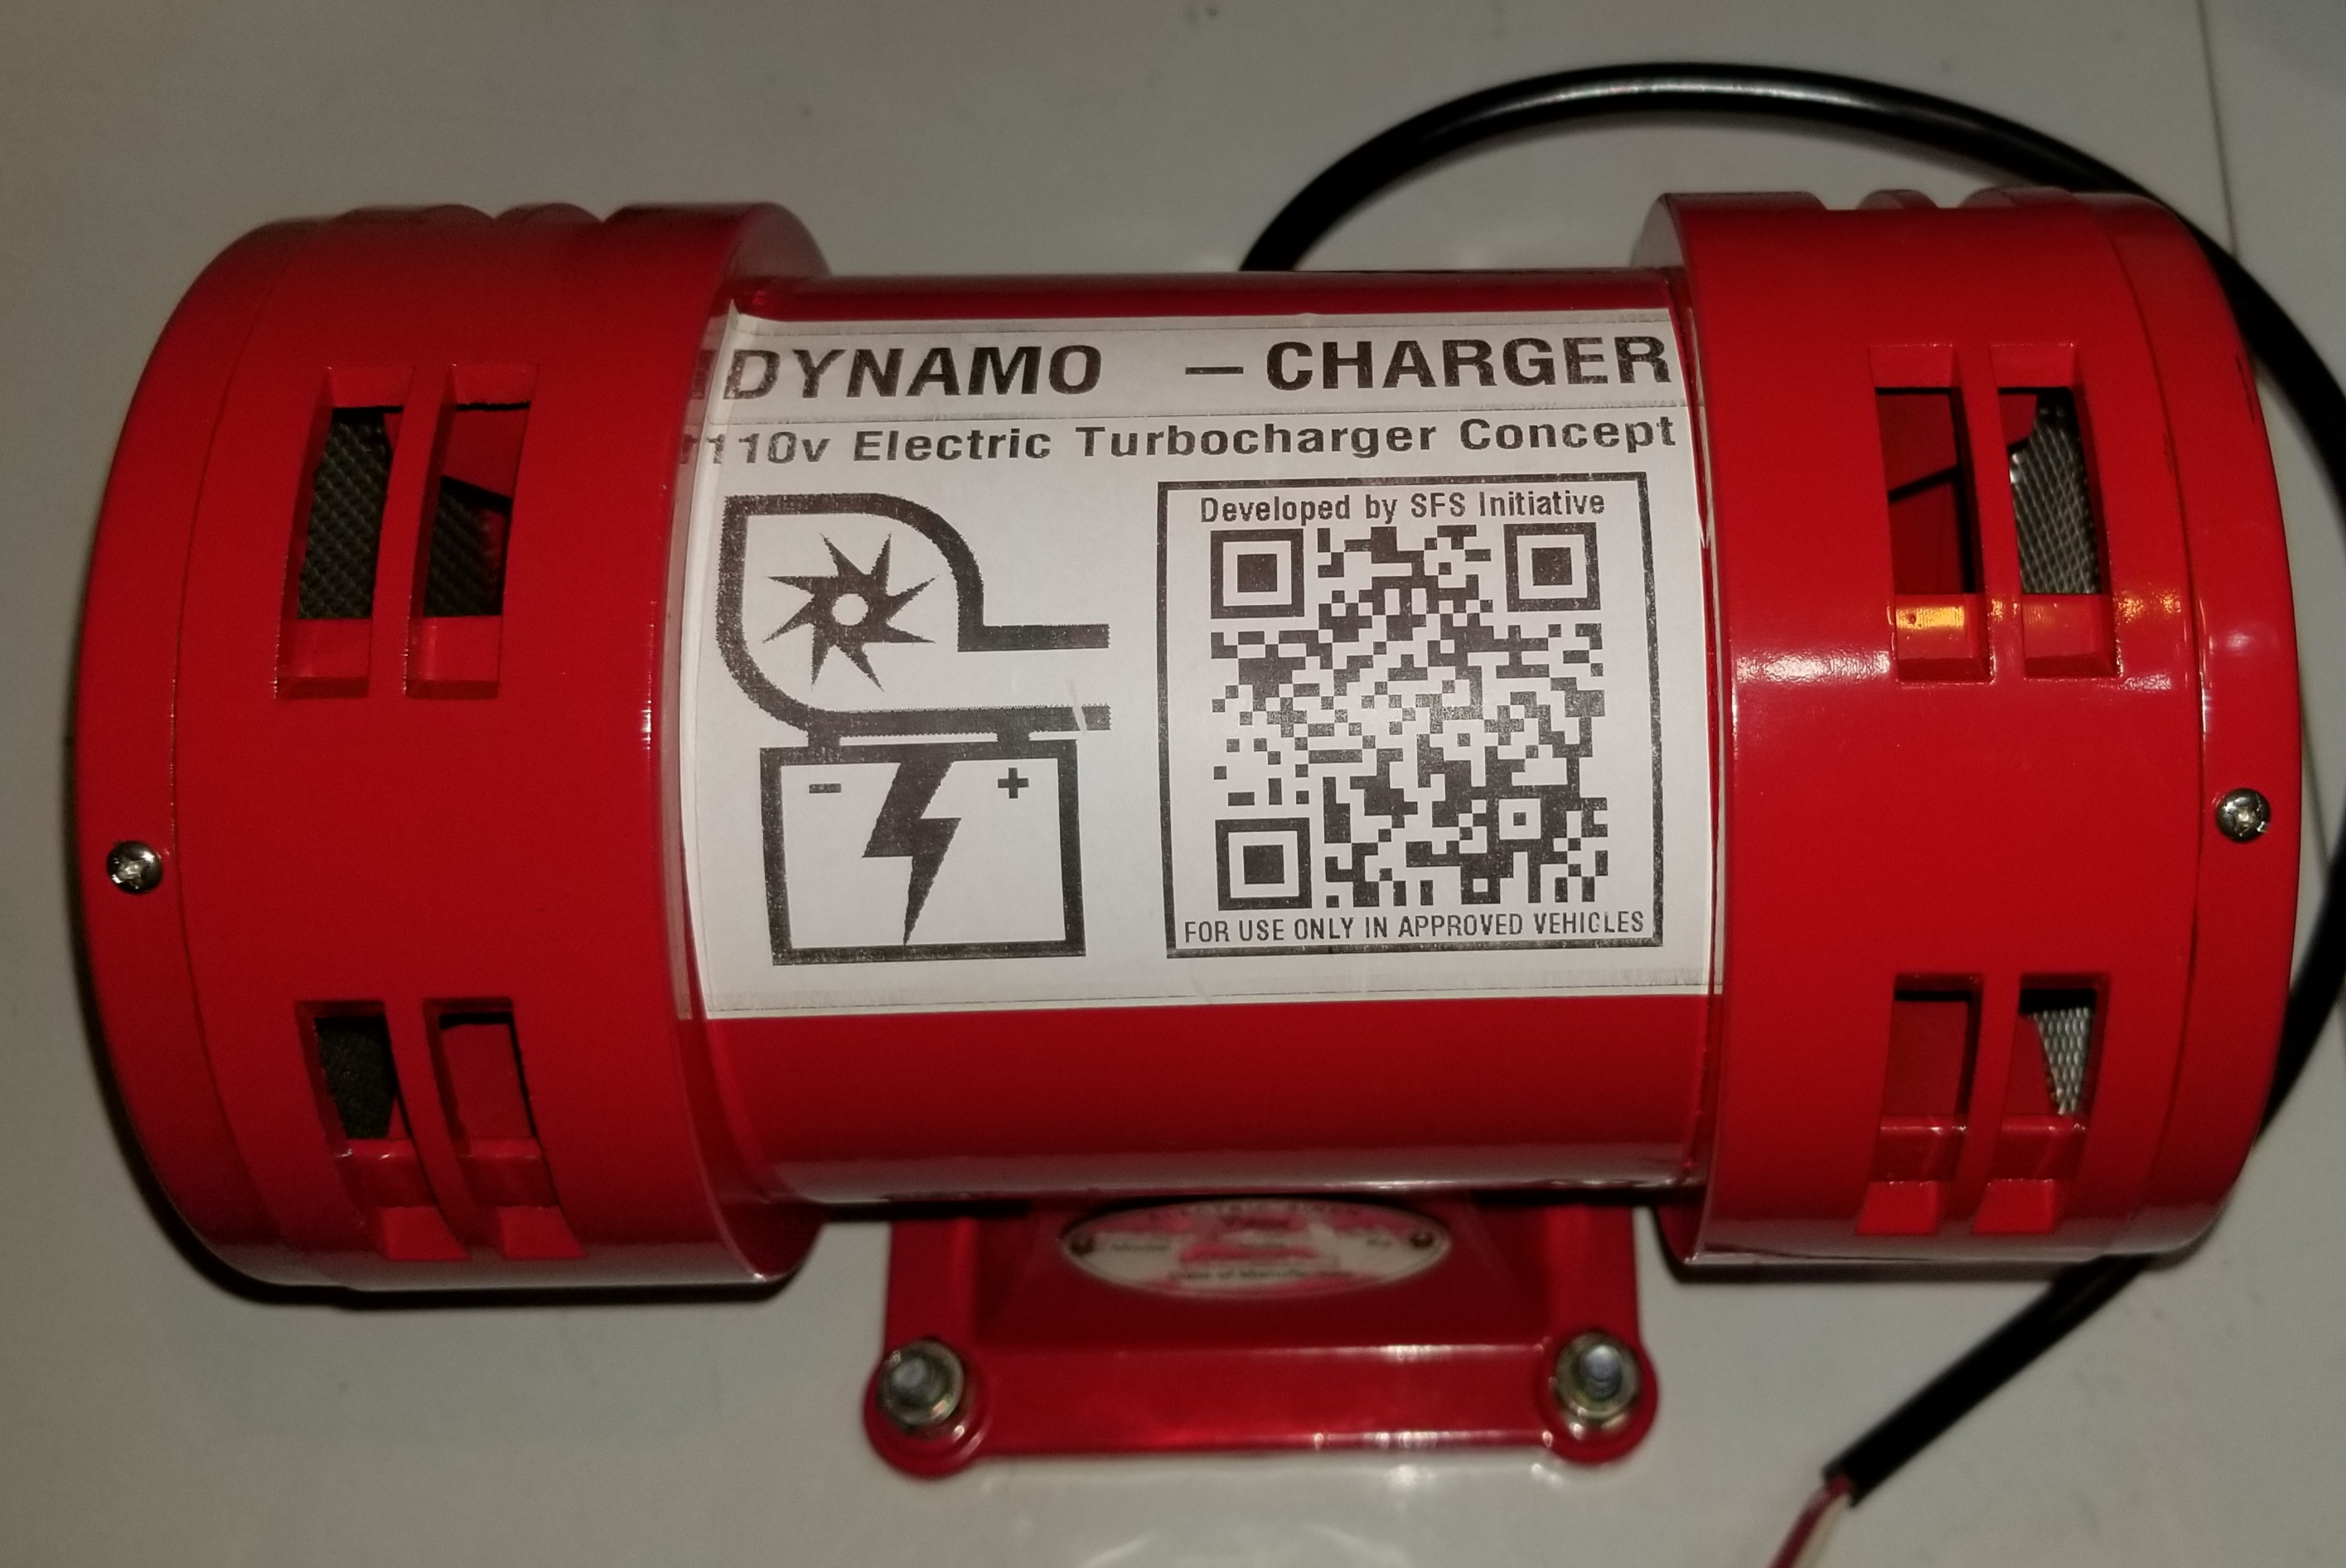 The Dynamo-Charger's Air Raid siren core, before modification.